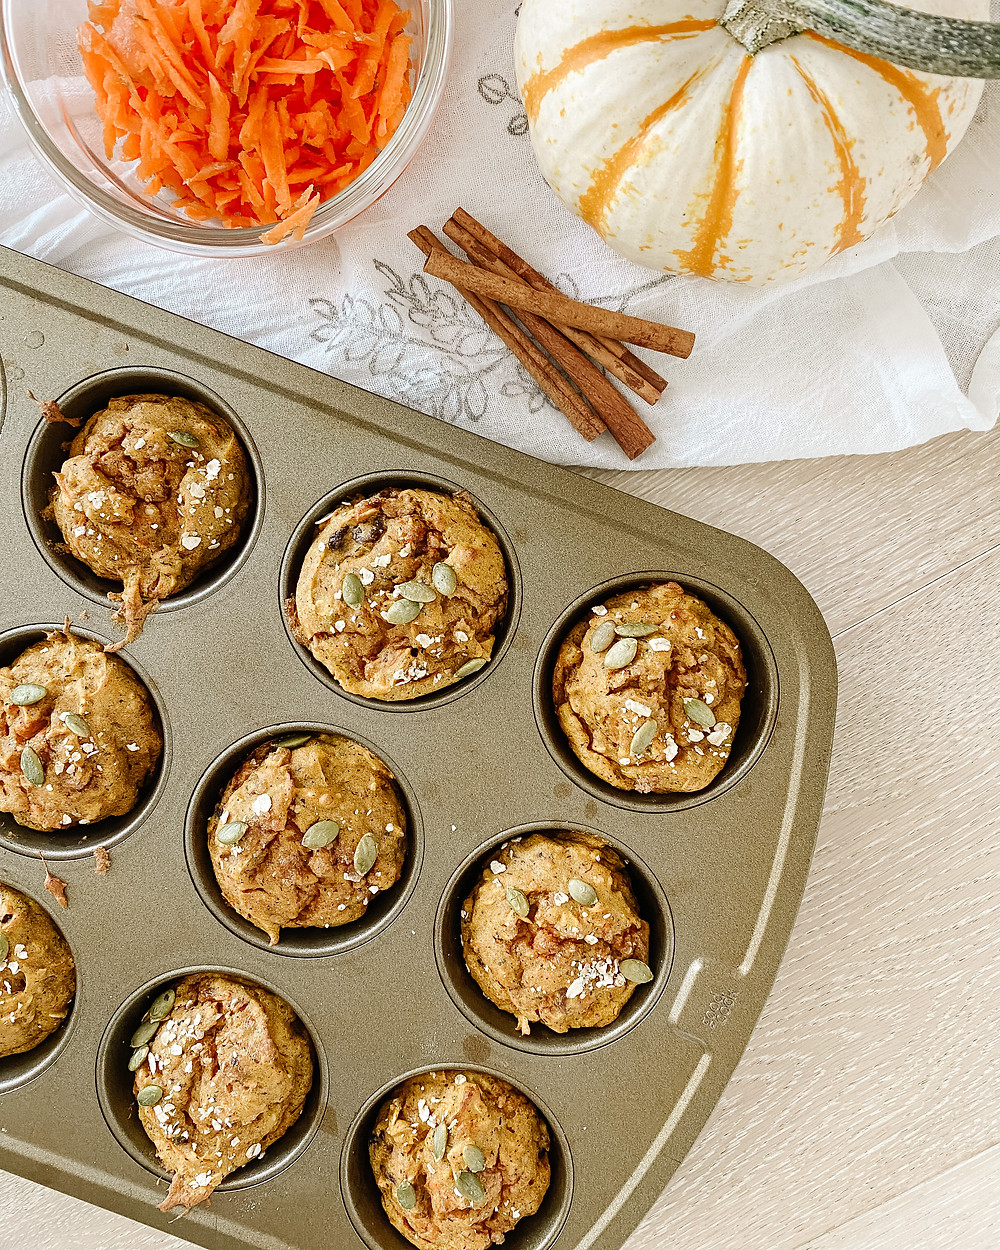 A metal muffin tin on a white table cloth shows off pumpkin and nut muffins beside cinnamon sticks, a white pumpkin and a bowl of carrots.